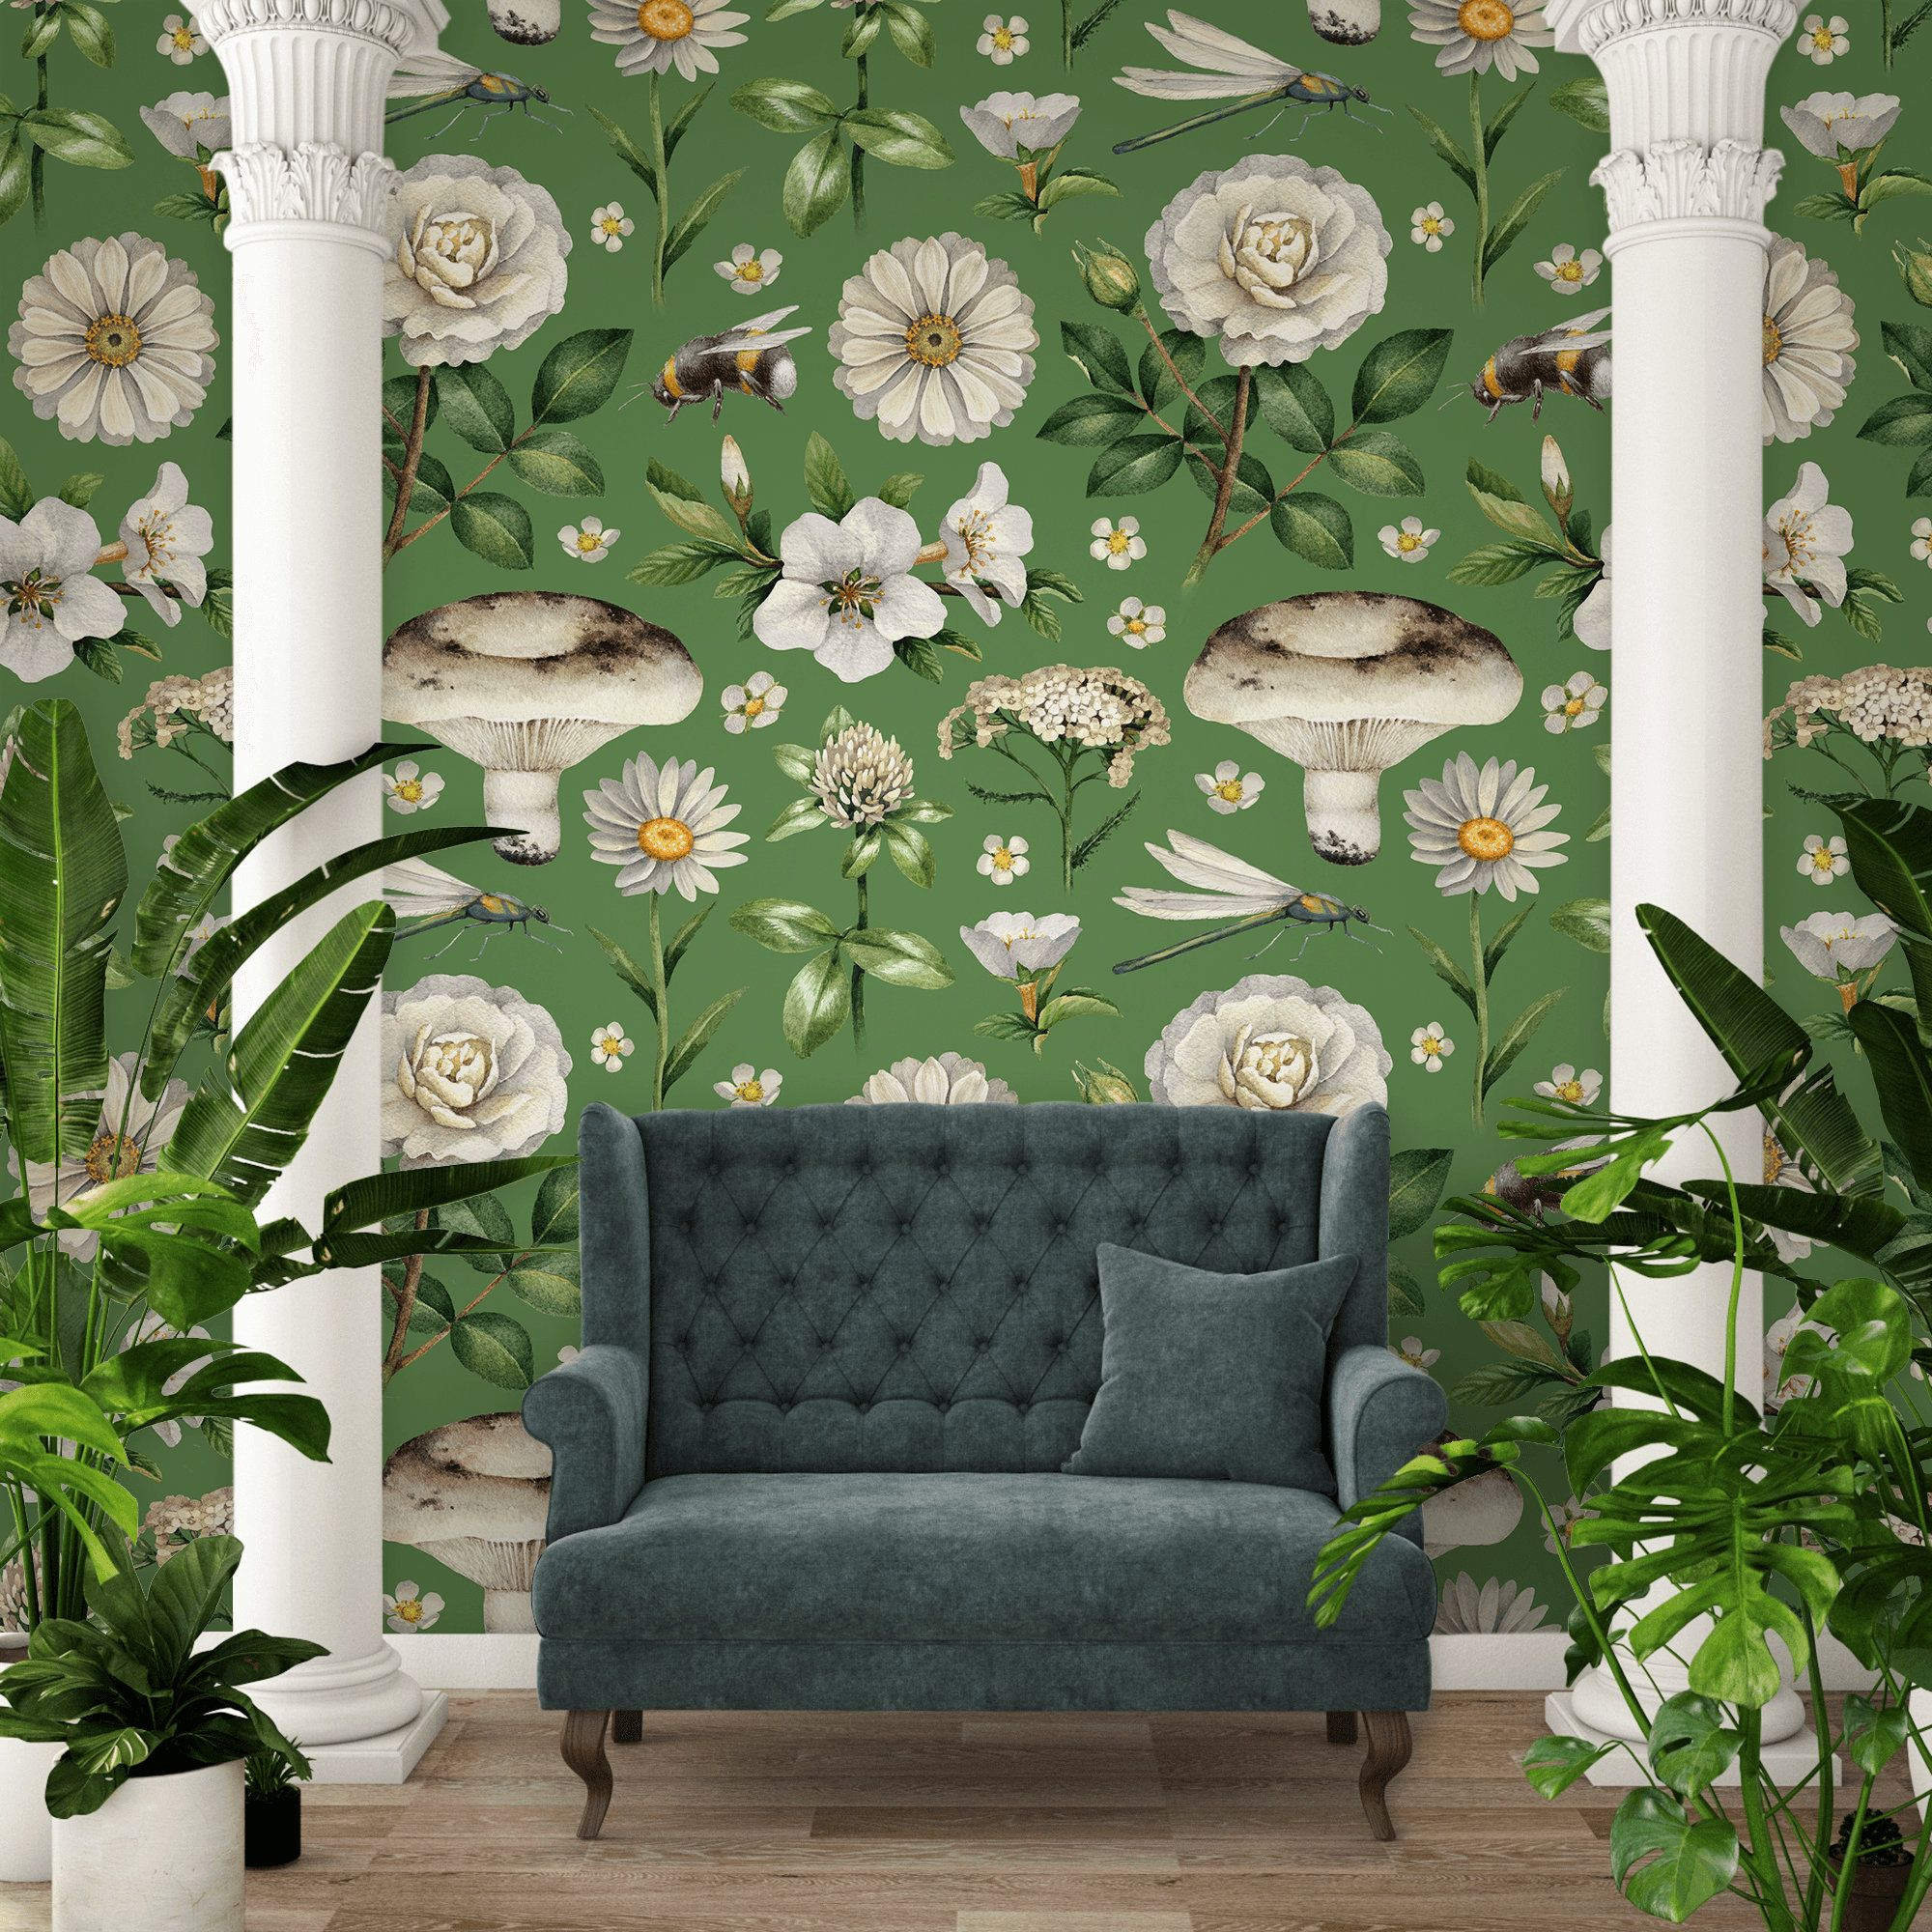 Retro Botanical Wallpaper Peel And Stick Wallpaper Etsy Botanical Wallpaper Watercolor Walls Removable Wallpaper